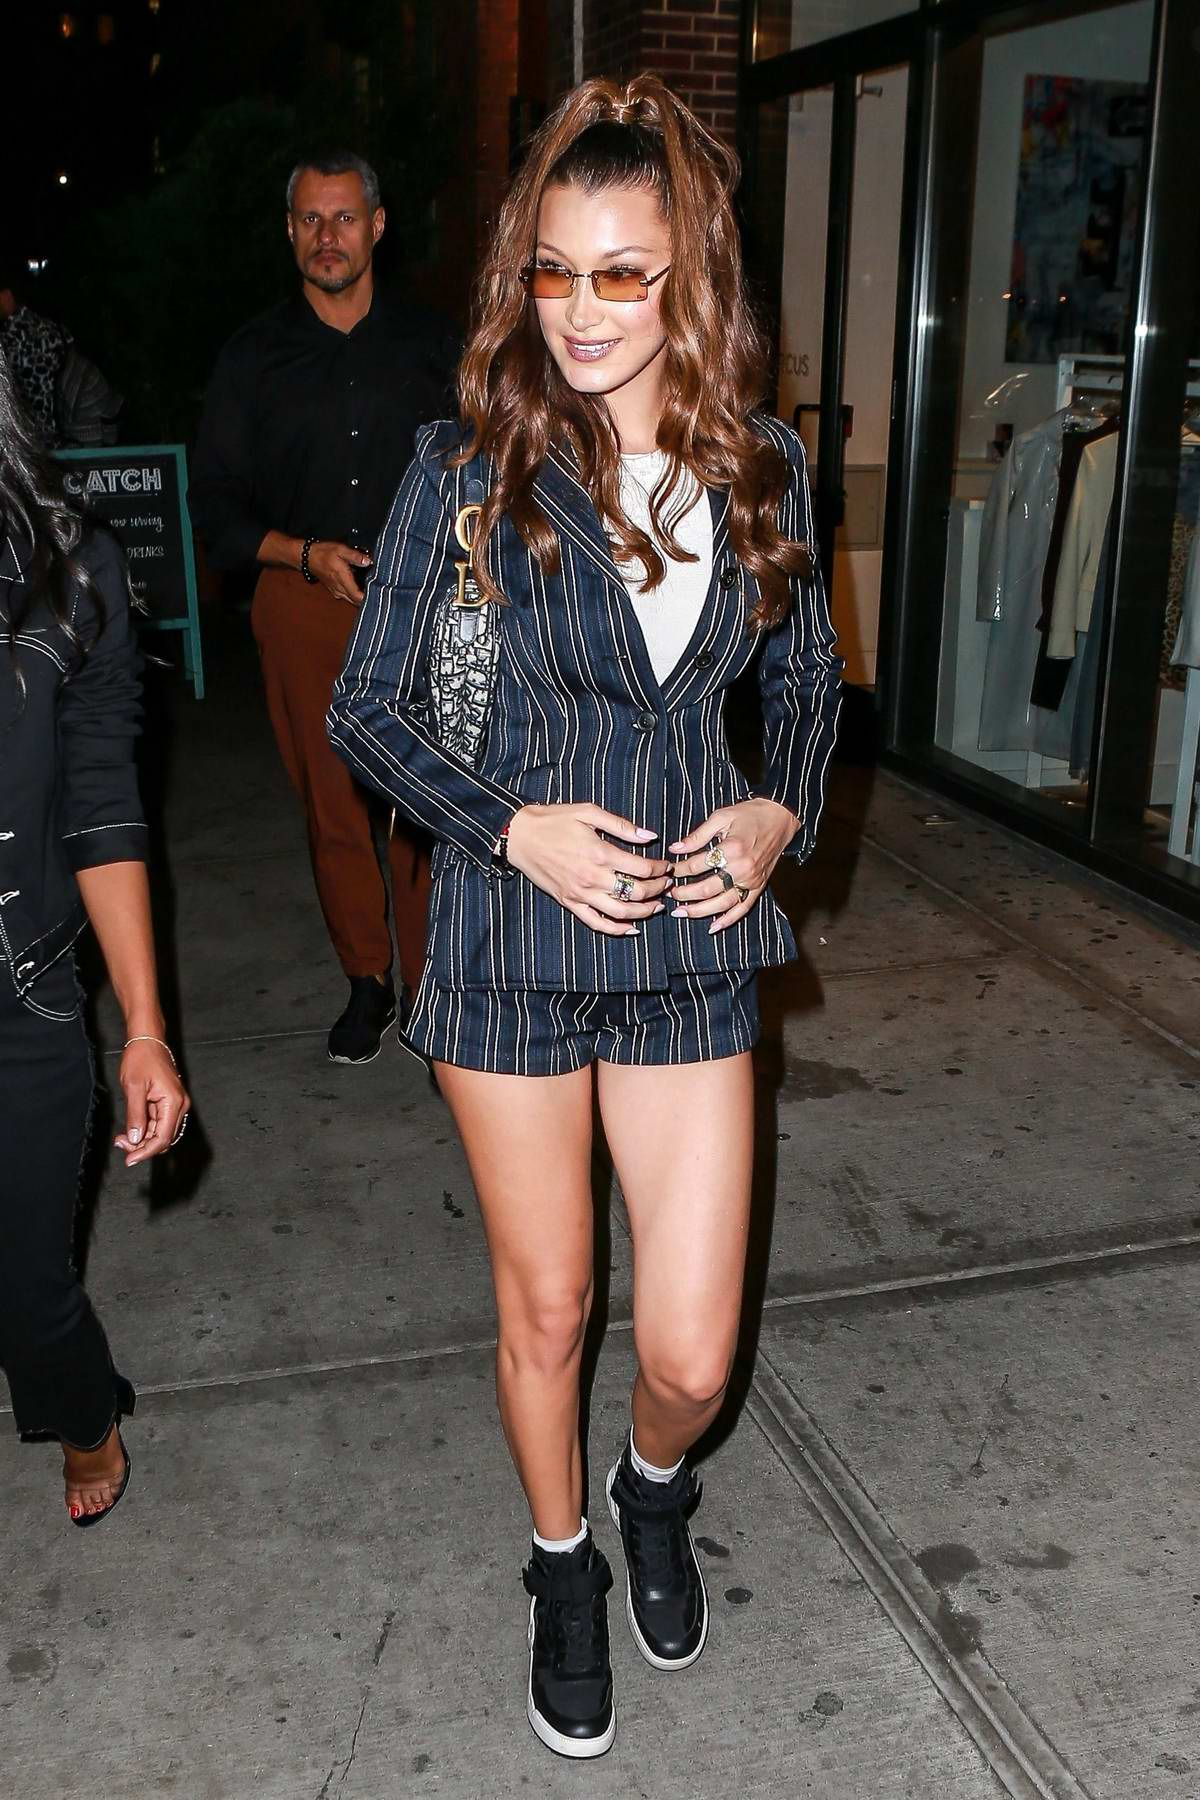 Bella Hadid wears blue pinstripe blazer with matching shorts while she hosts a meet and greet at Sephora in New York City